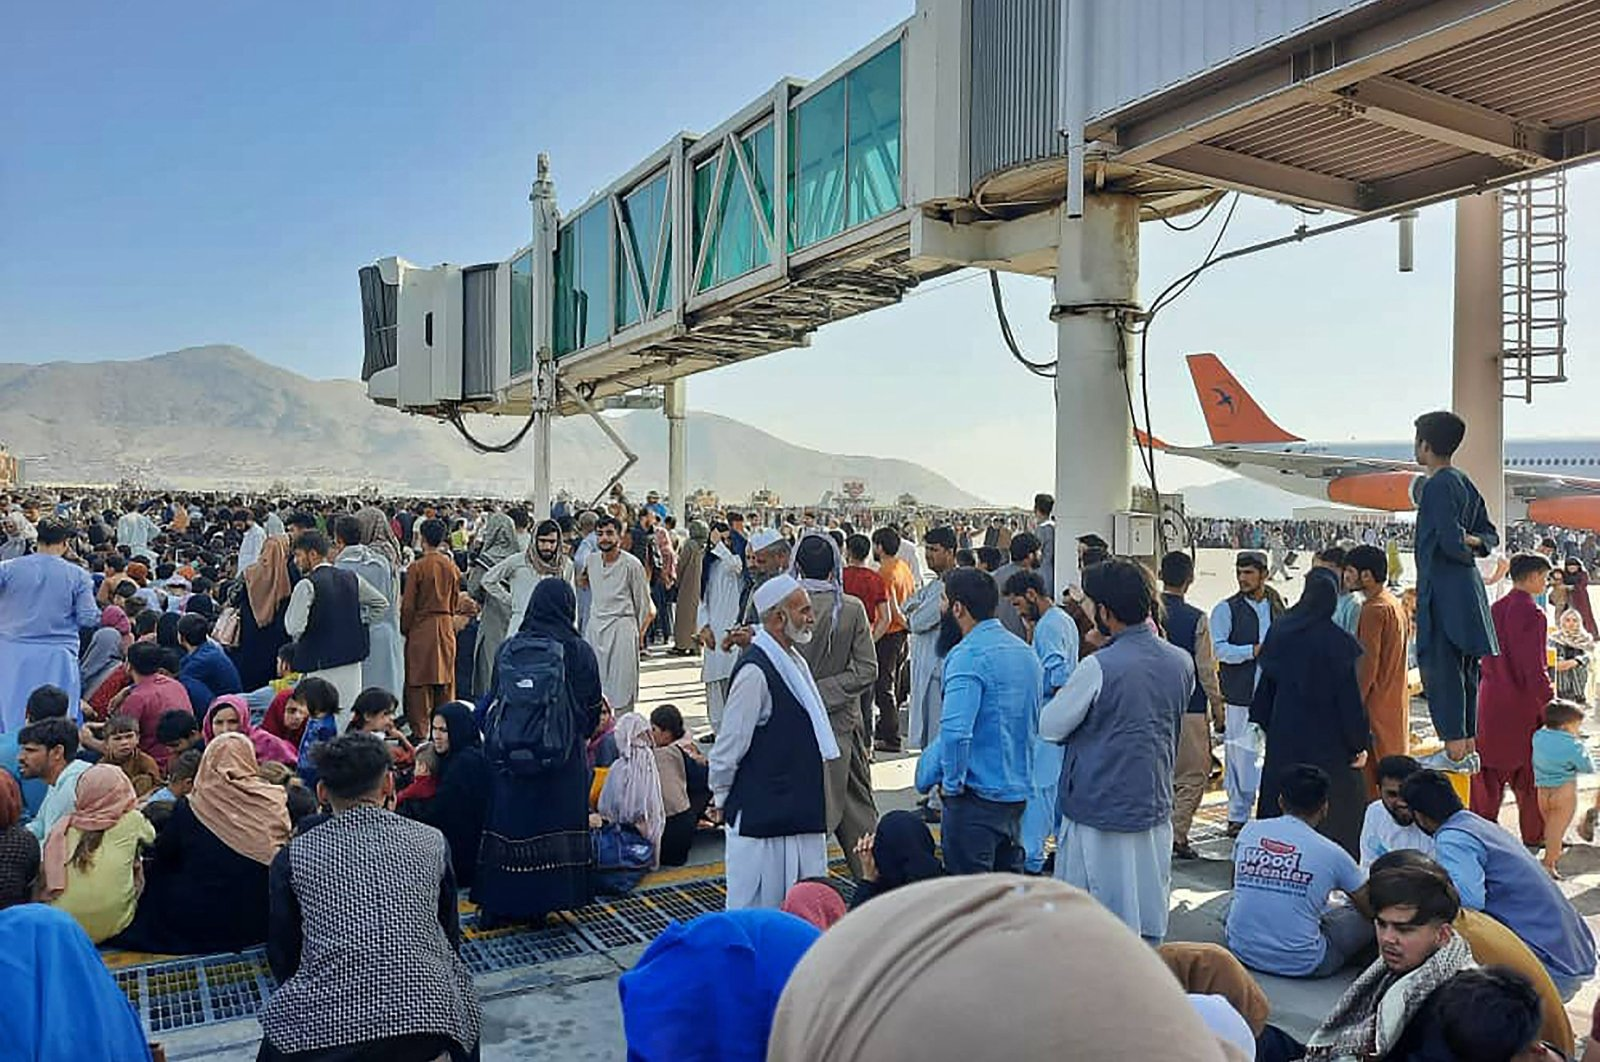 Afghans crowd at the tarmac of the Kabul Hamid Karzai International Airport on Aug. 16, 2021. (AFP)